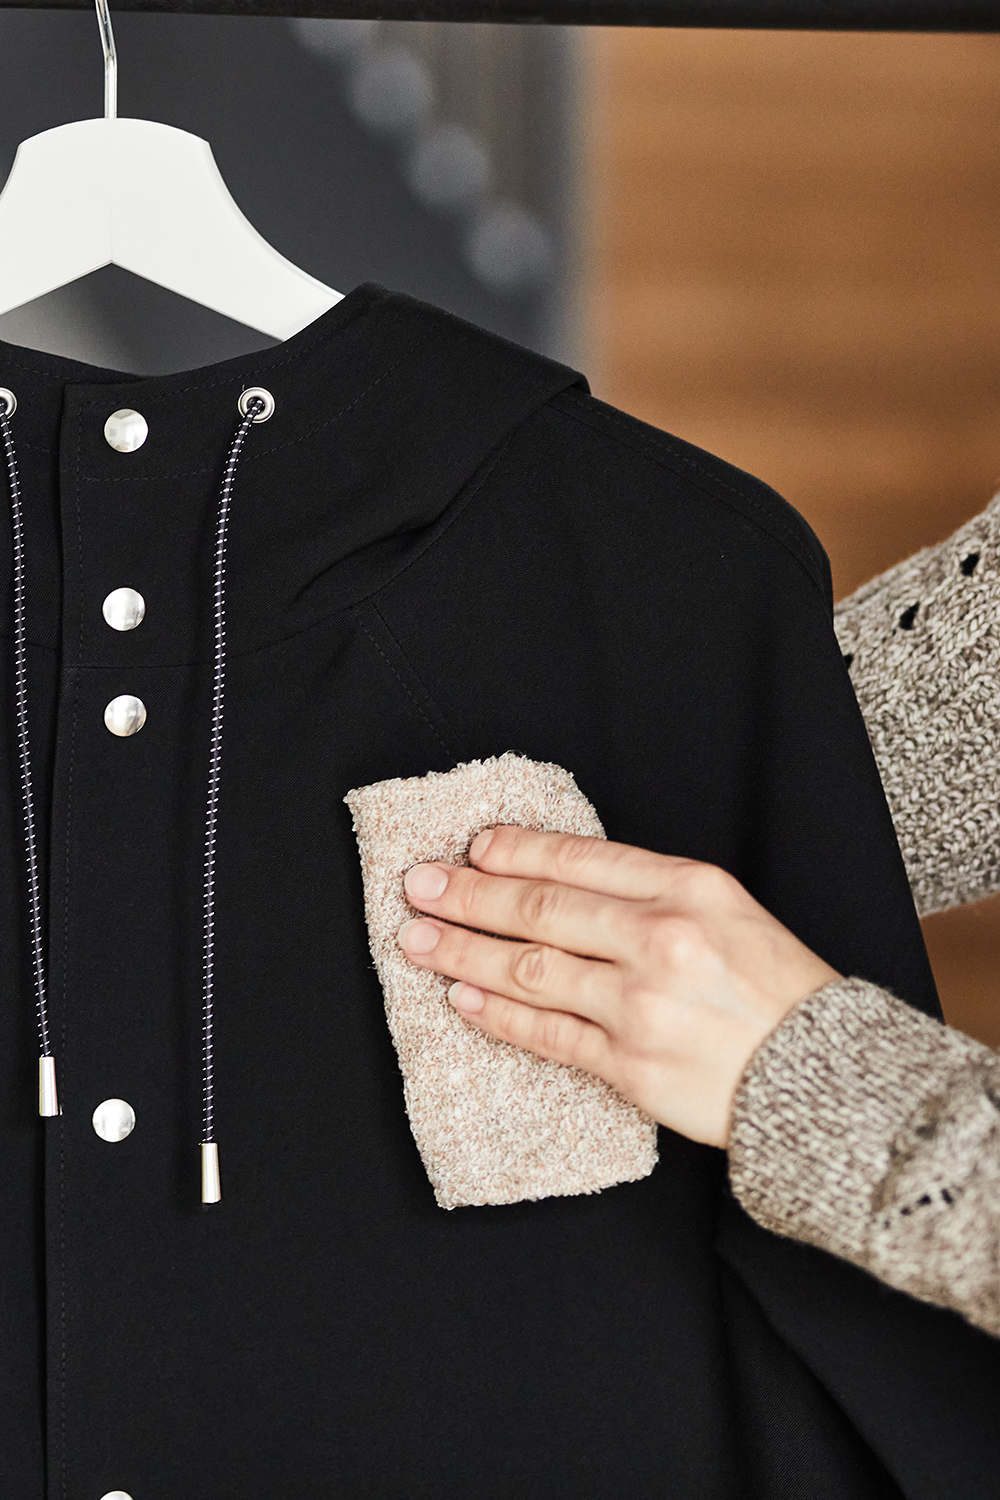 clean your raincoat with a damp cloth